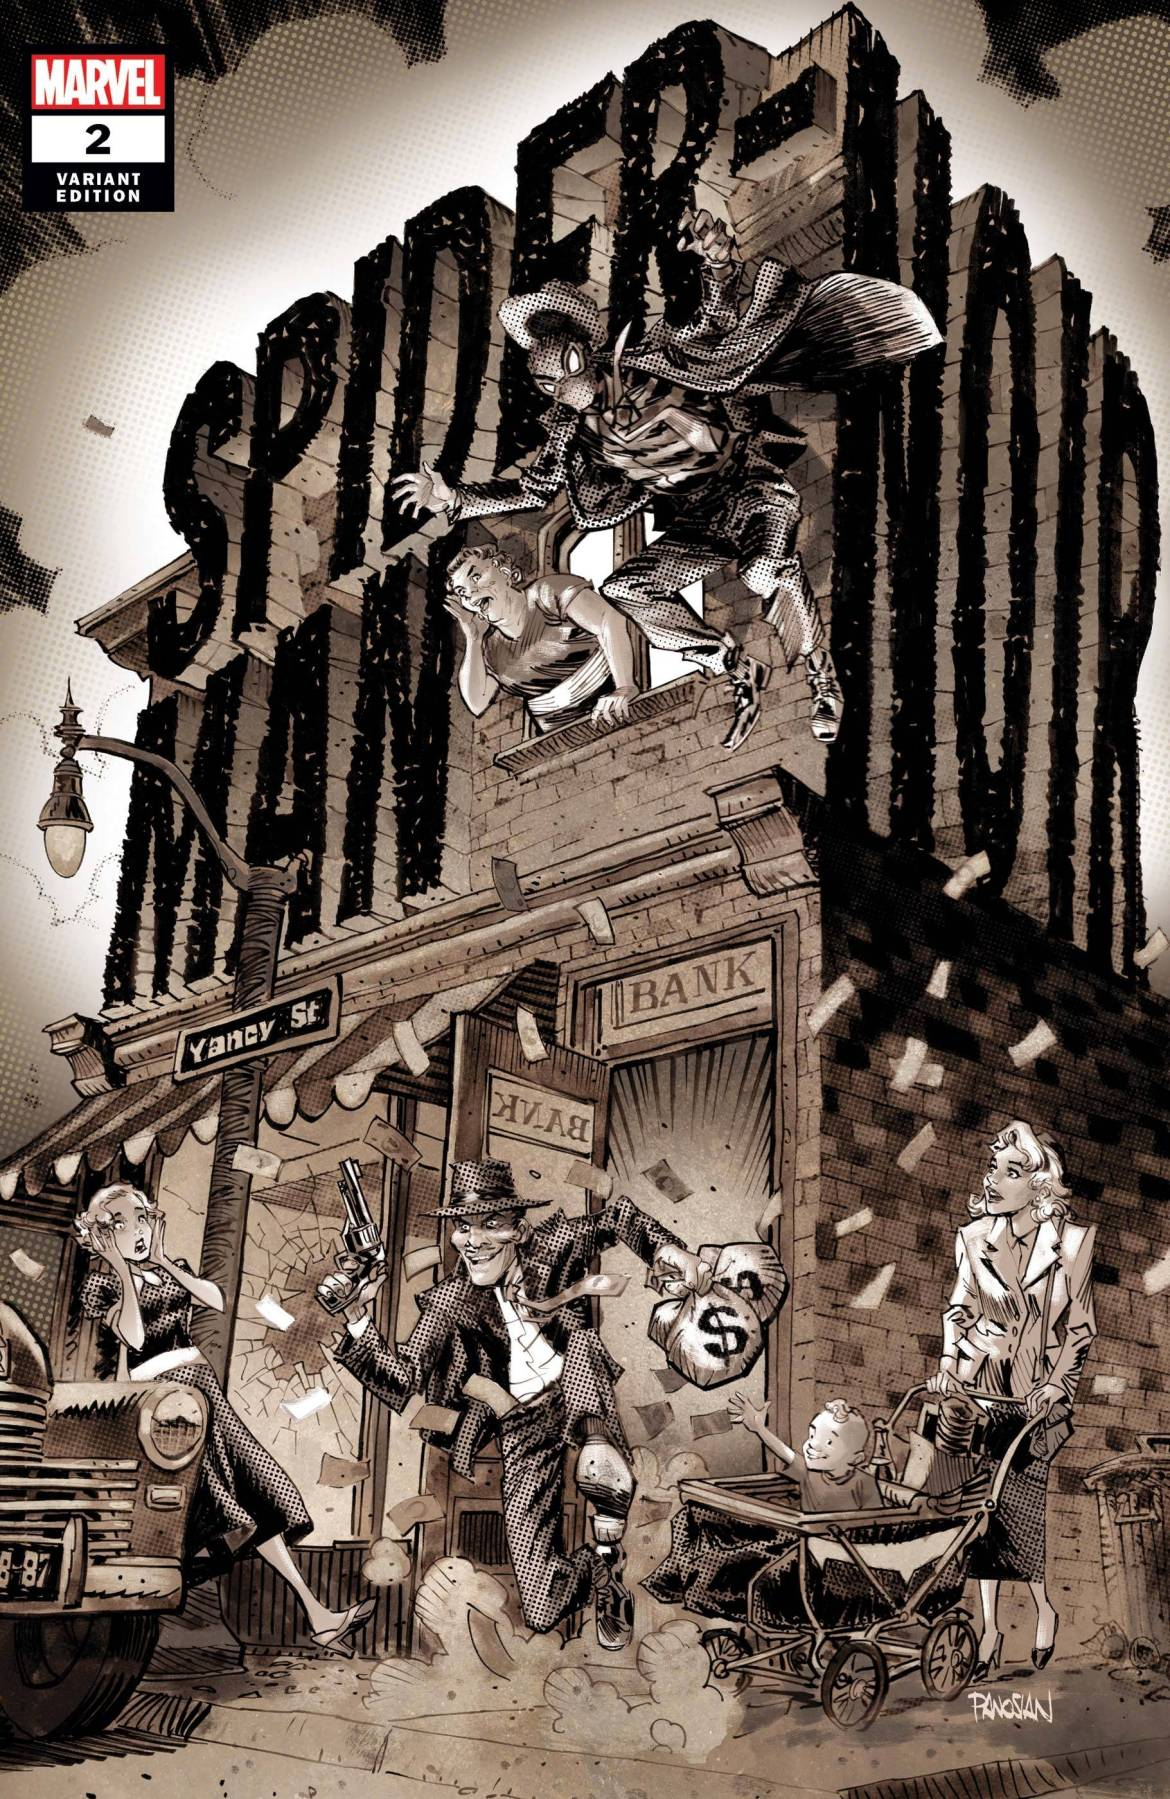 788491_spider-man-noir-2-panosian-variant ComicList: Marvel Comics New Releases for 07/29/2020